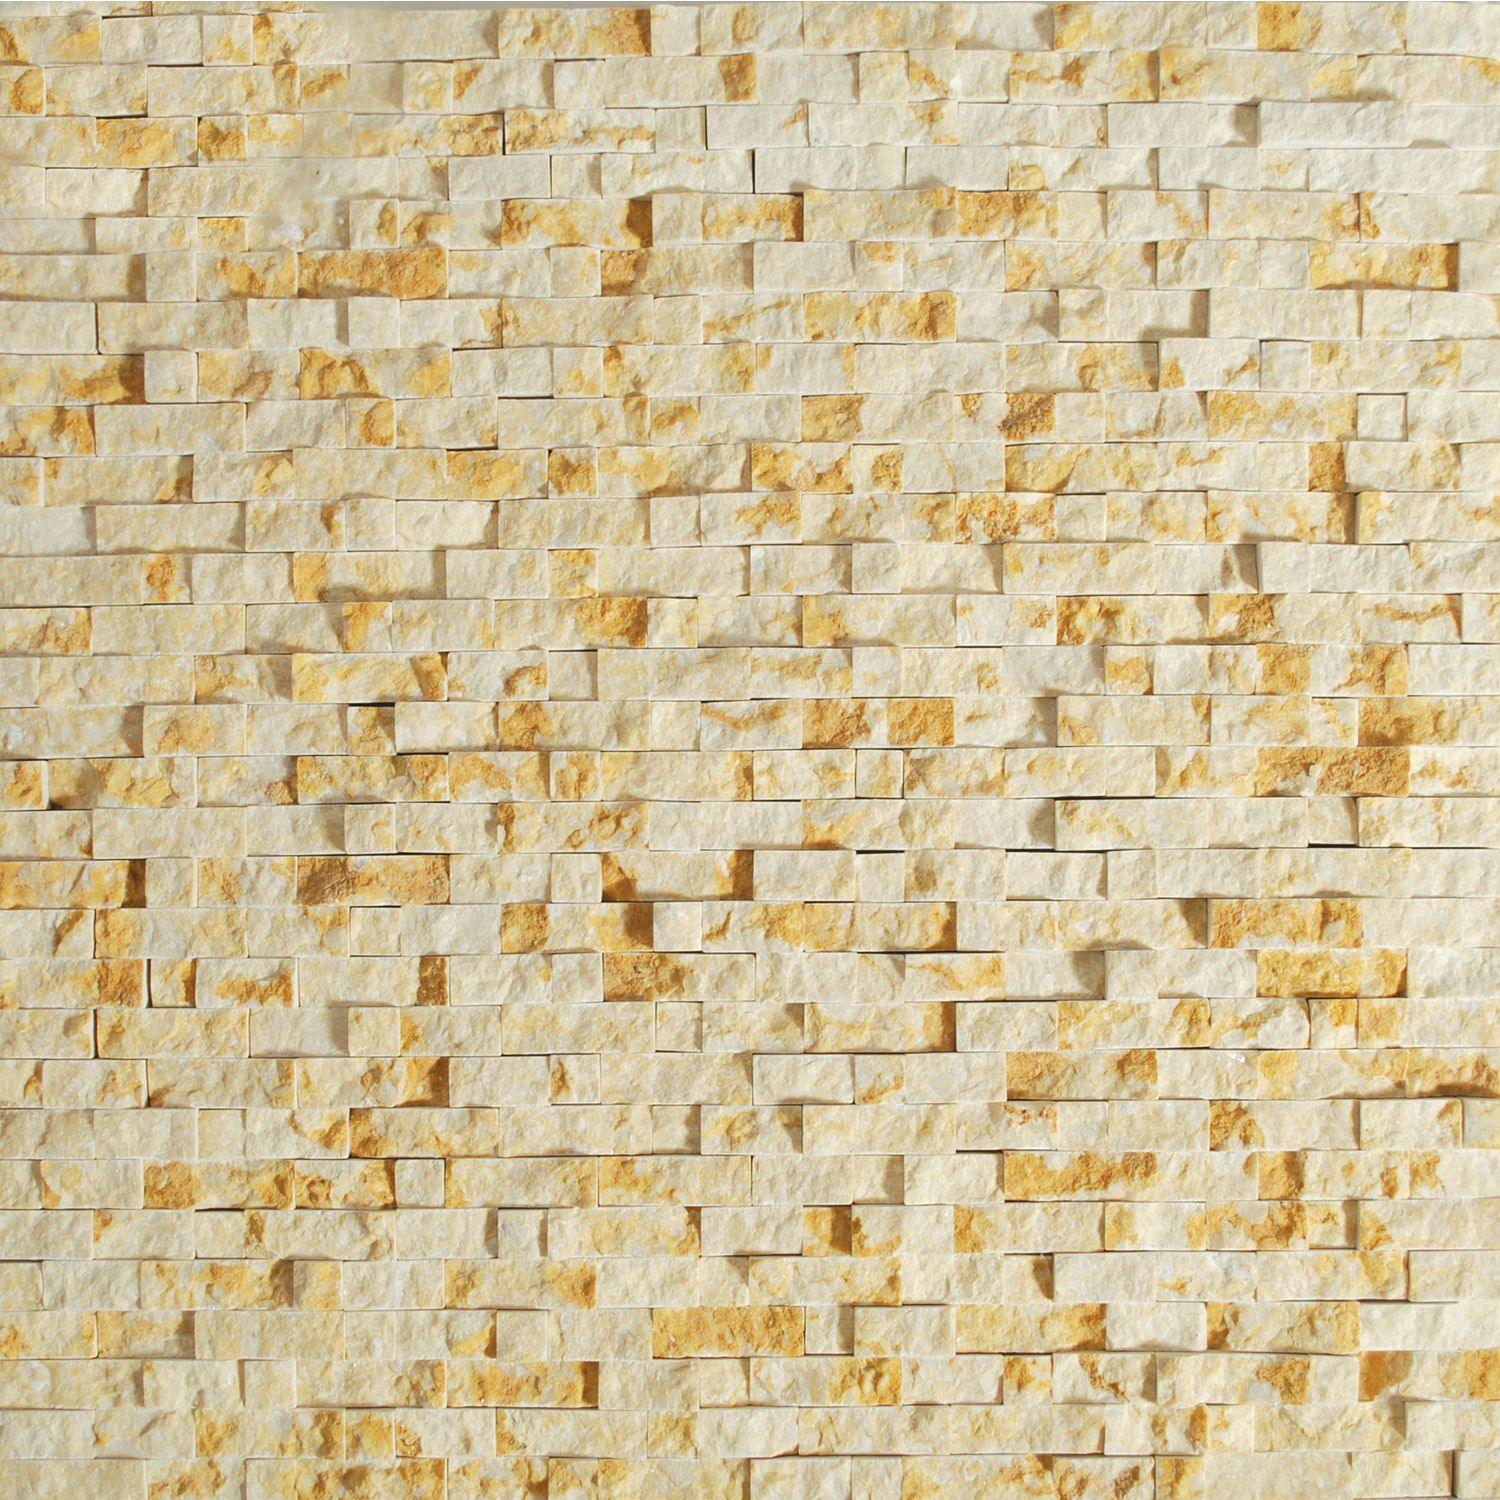 Tesoro 12 X 12 Gold Beige Micro Mosaic Sheet From SPLIT FACE ...